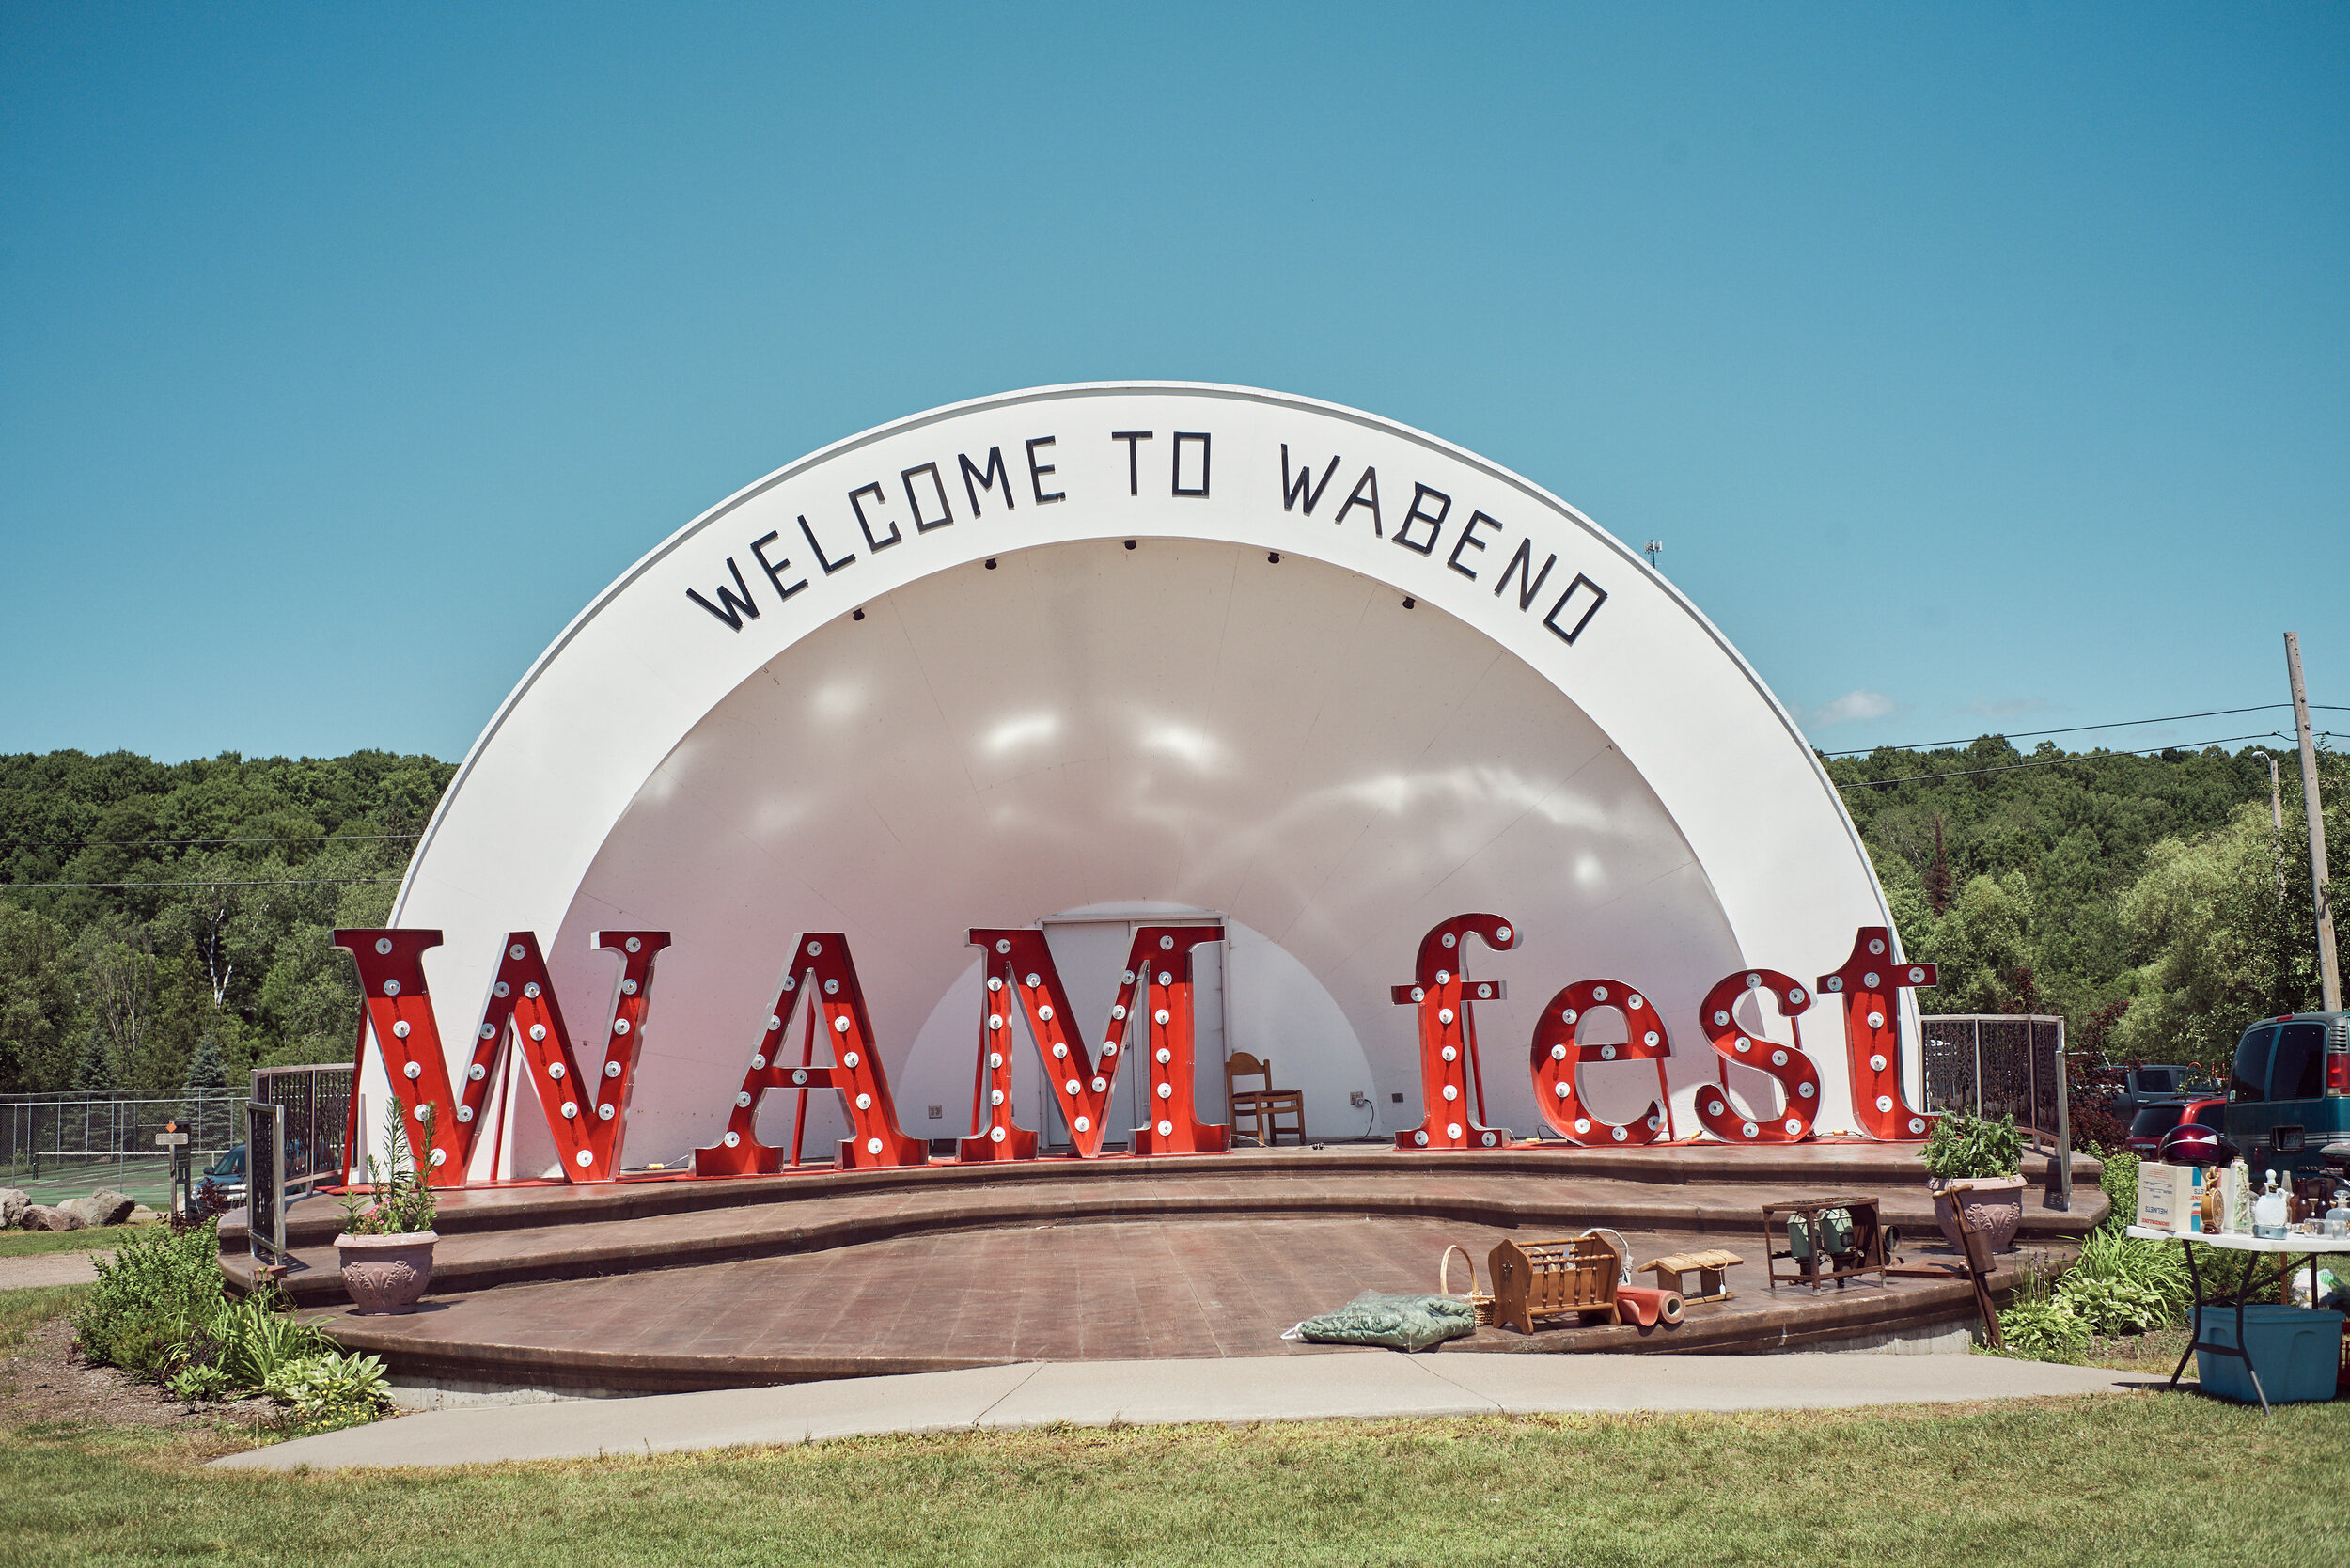 2019_0716_Project_Wabeno_SteamUP0055.jpg